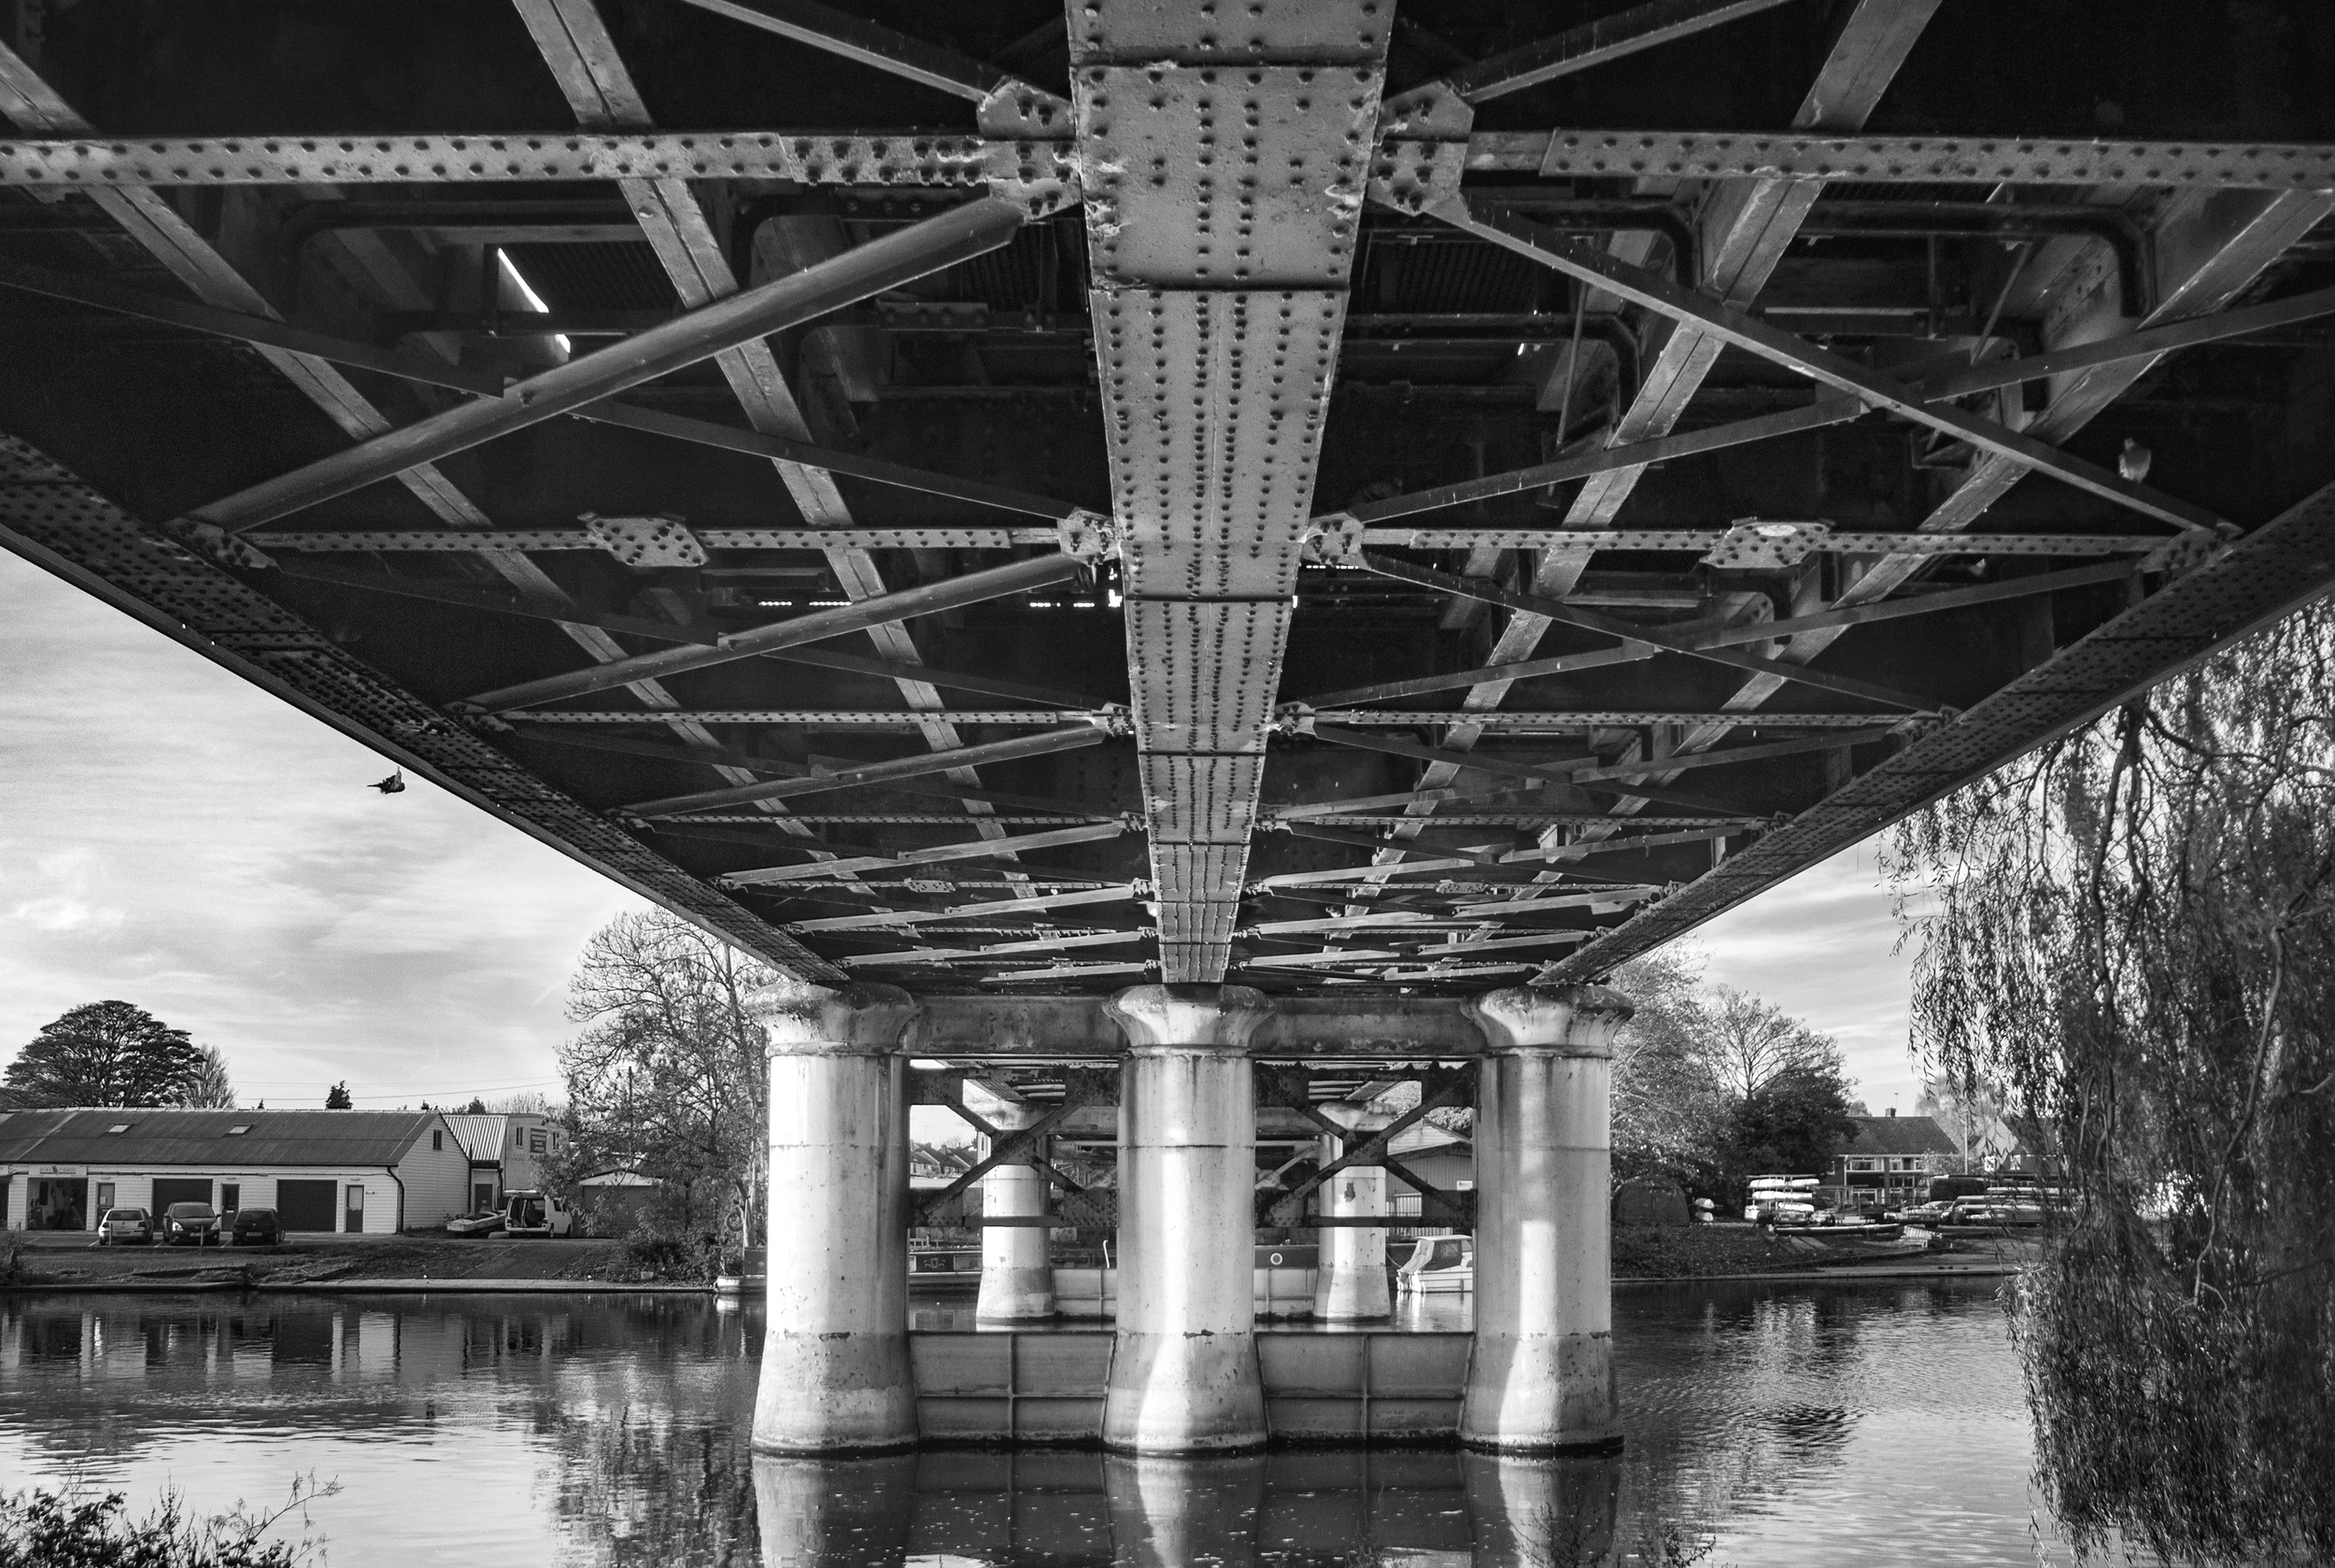 Staines_02-bw.jpg